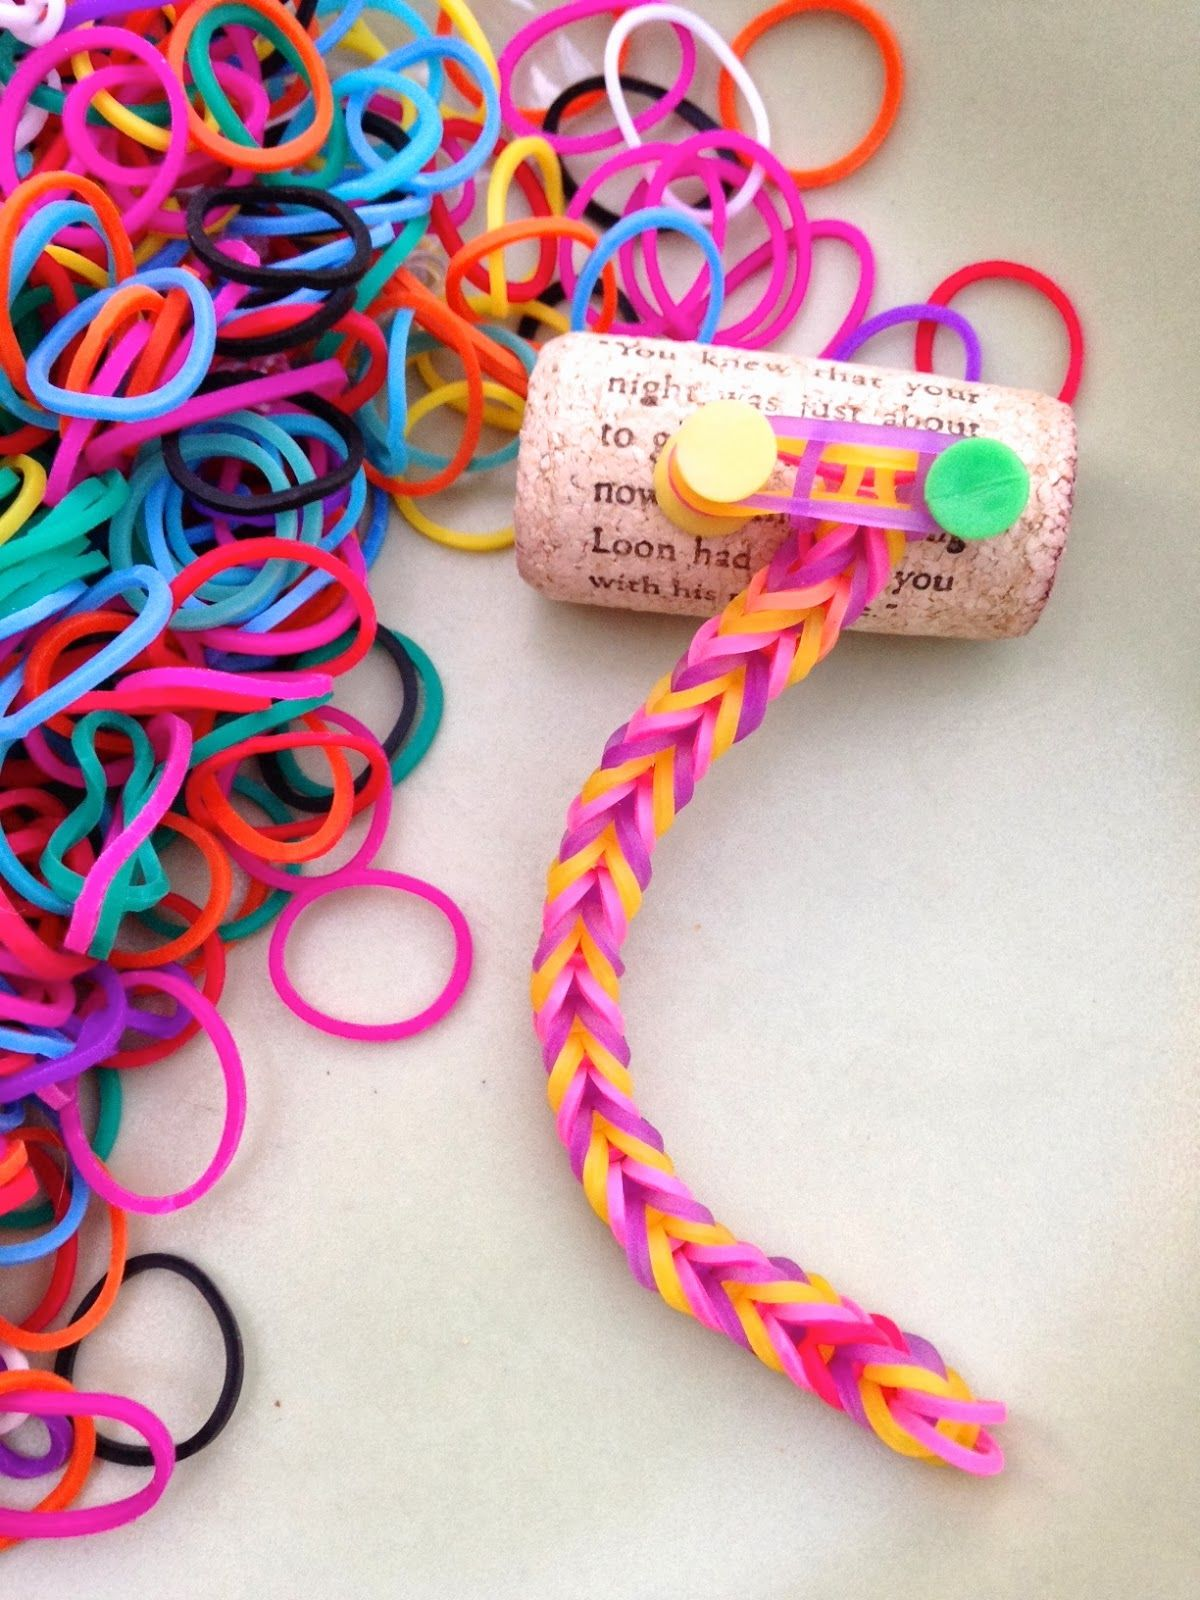 My Daughter And Her Friends Are Deeply Immersed In The New Rubber Band Bracelet Craze It Reminds Me Of Wild Silly Frenzy That